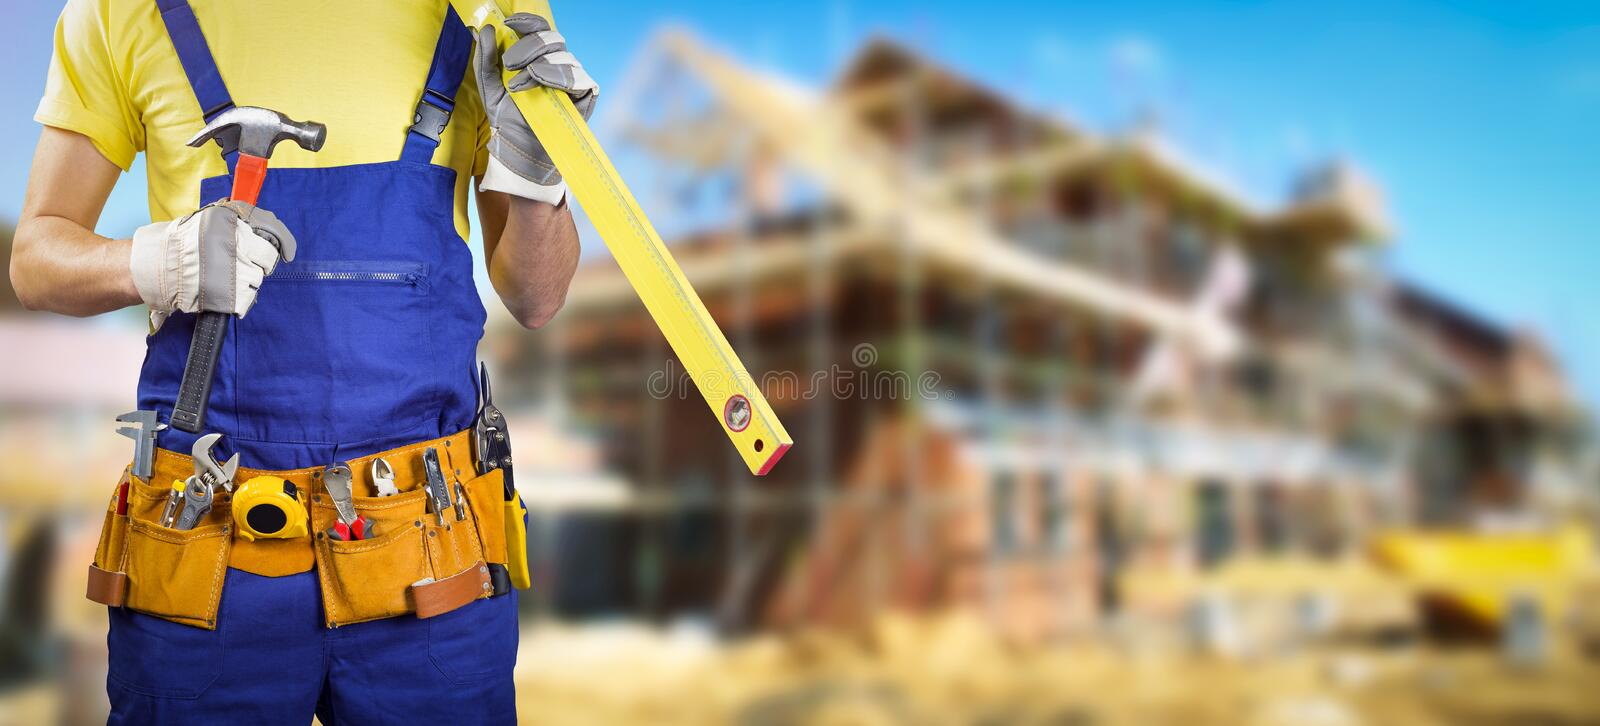 Worker with tool belt in house construction site royalty free stock images